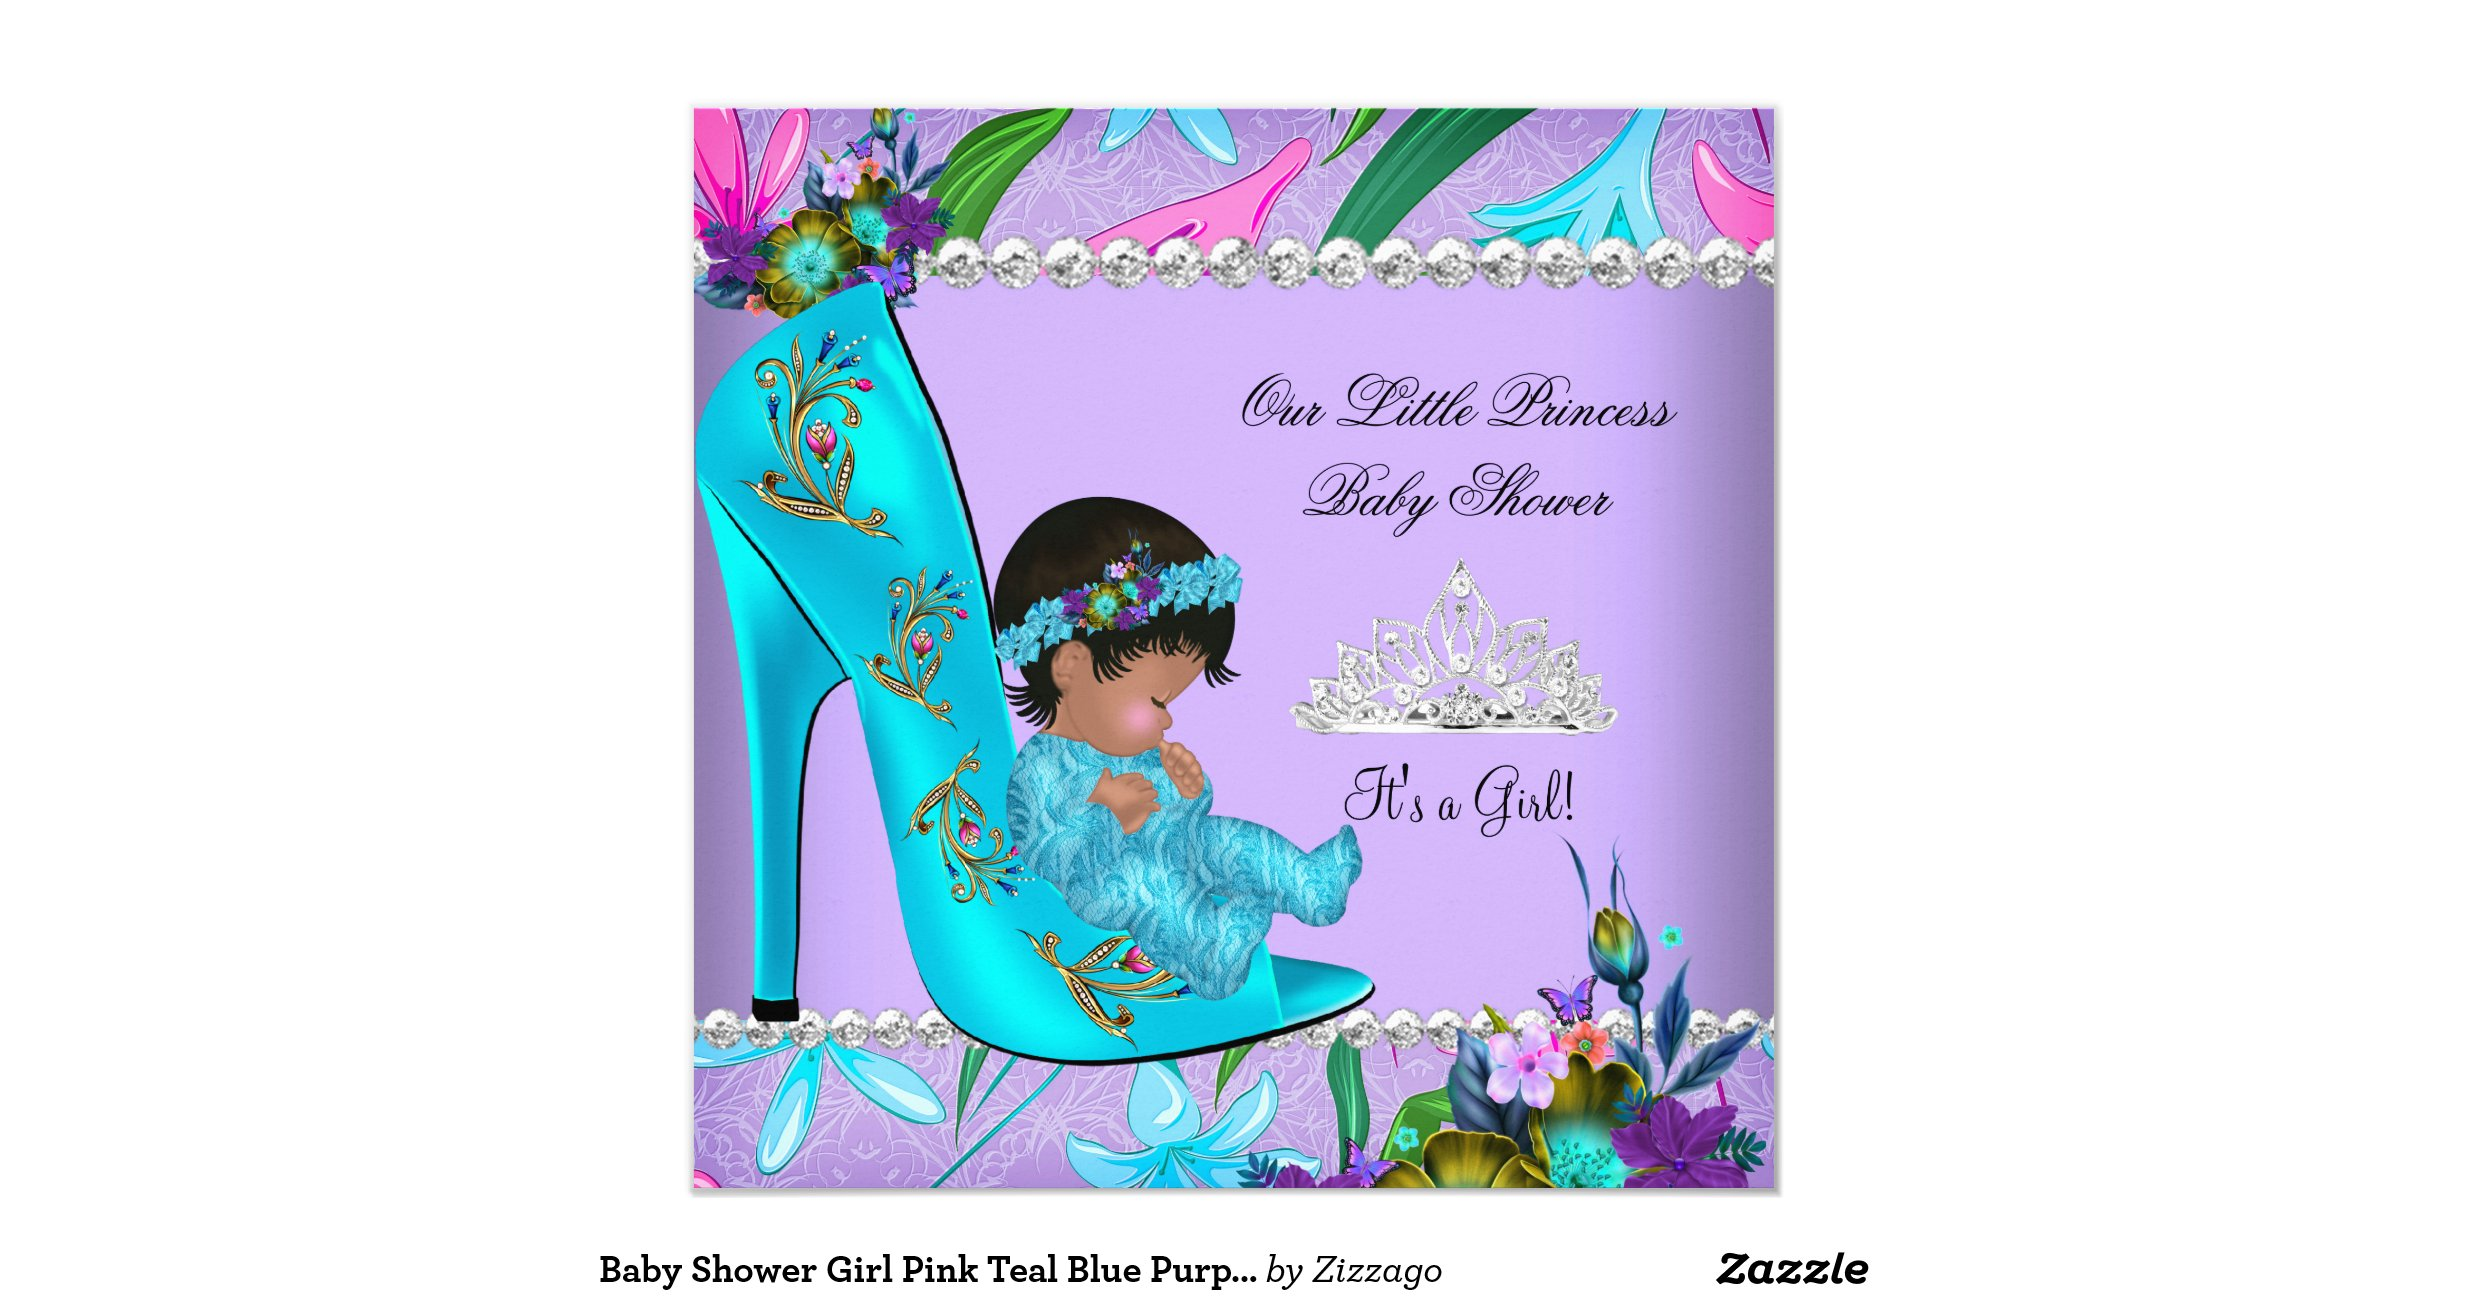 baby shower girl pink teal blue purple shoe invitation